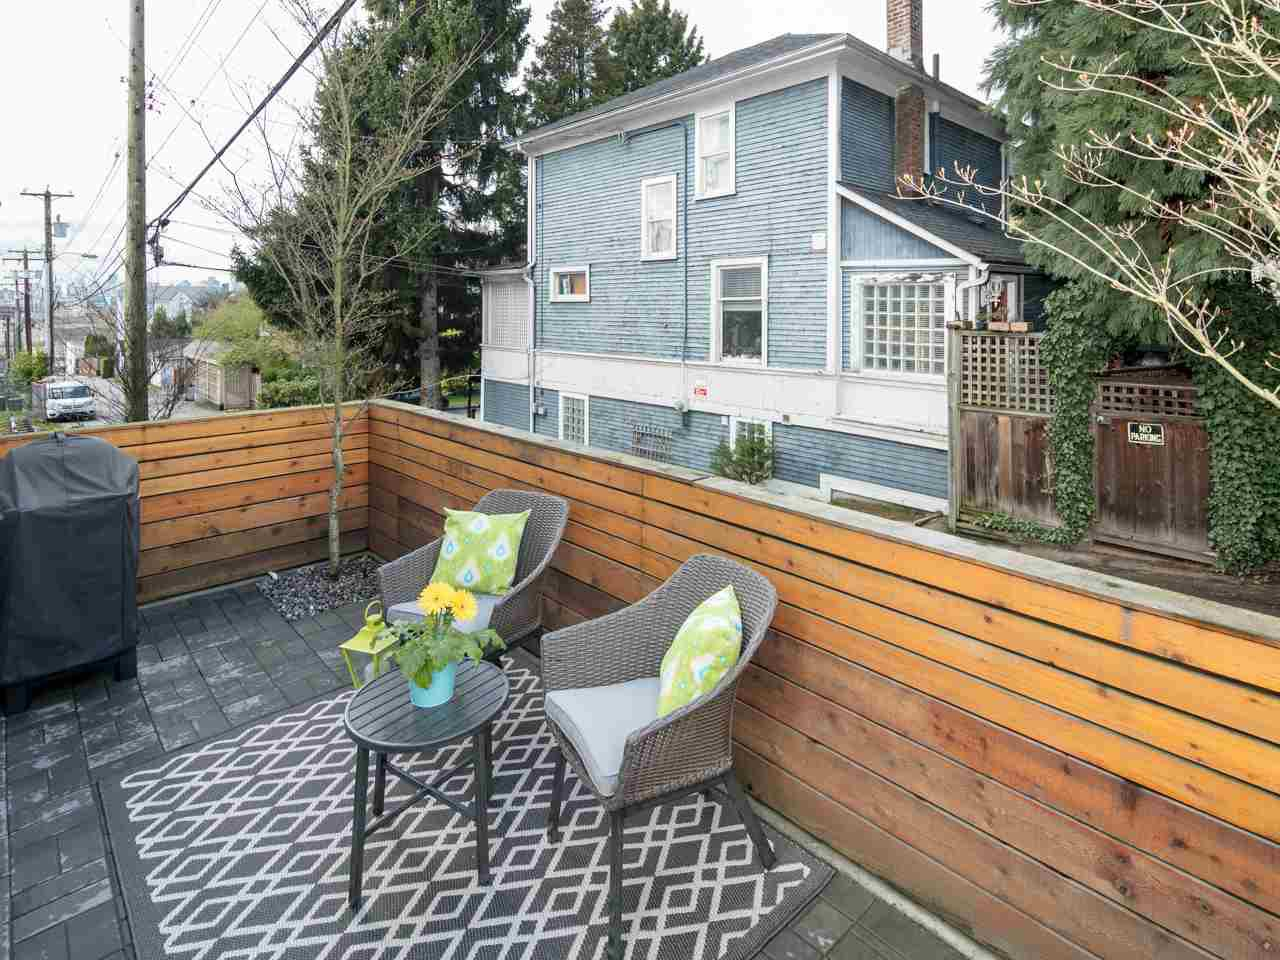 Photo 17: Photos: 4 1411 E 1ST AVENUE in Vancouver: Grandview VE Townhouse for sale (Vancouver East)  : MLS®# R2254853